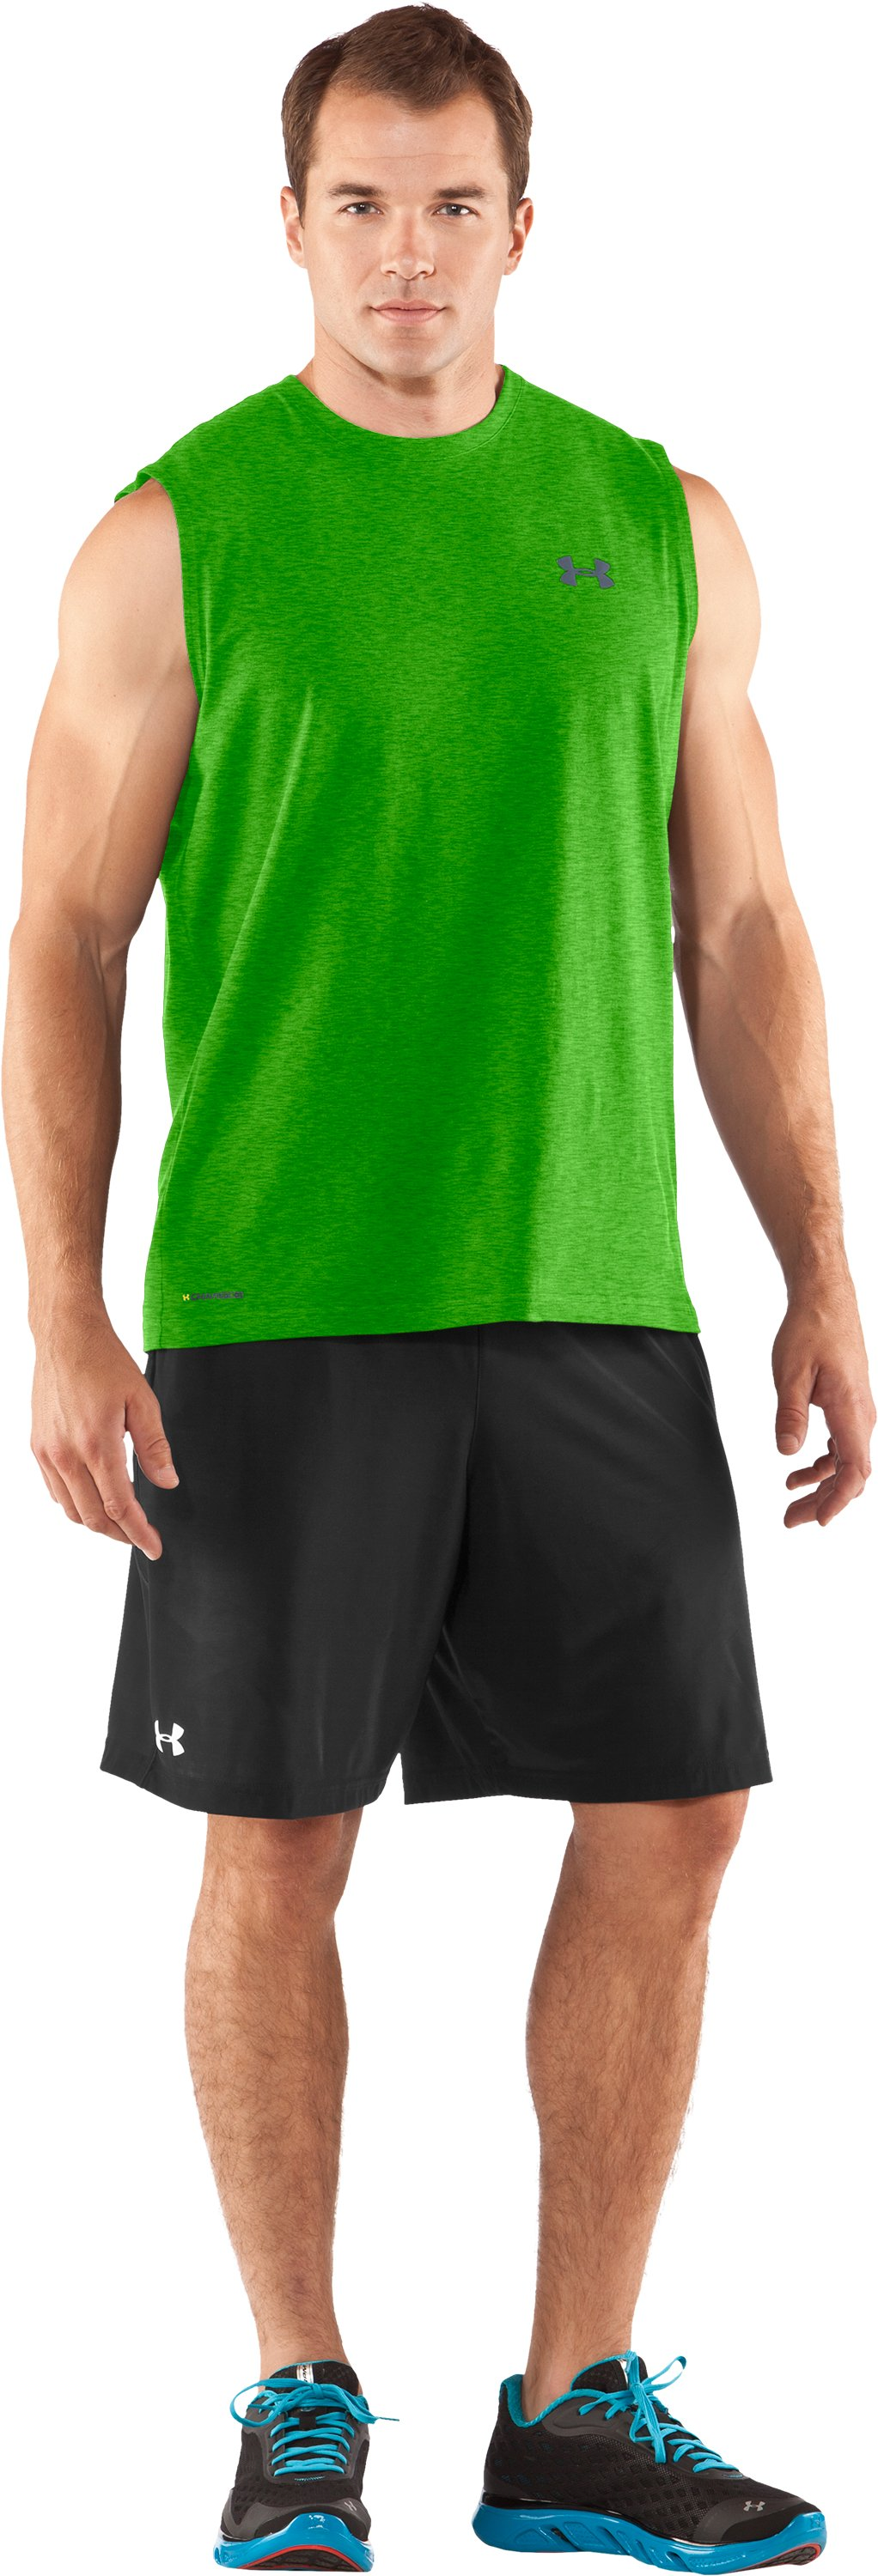 Men's Charged Cotton® Sleeveless T-shirt, PARROT GREEN, zoomed image